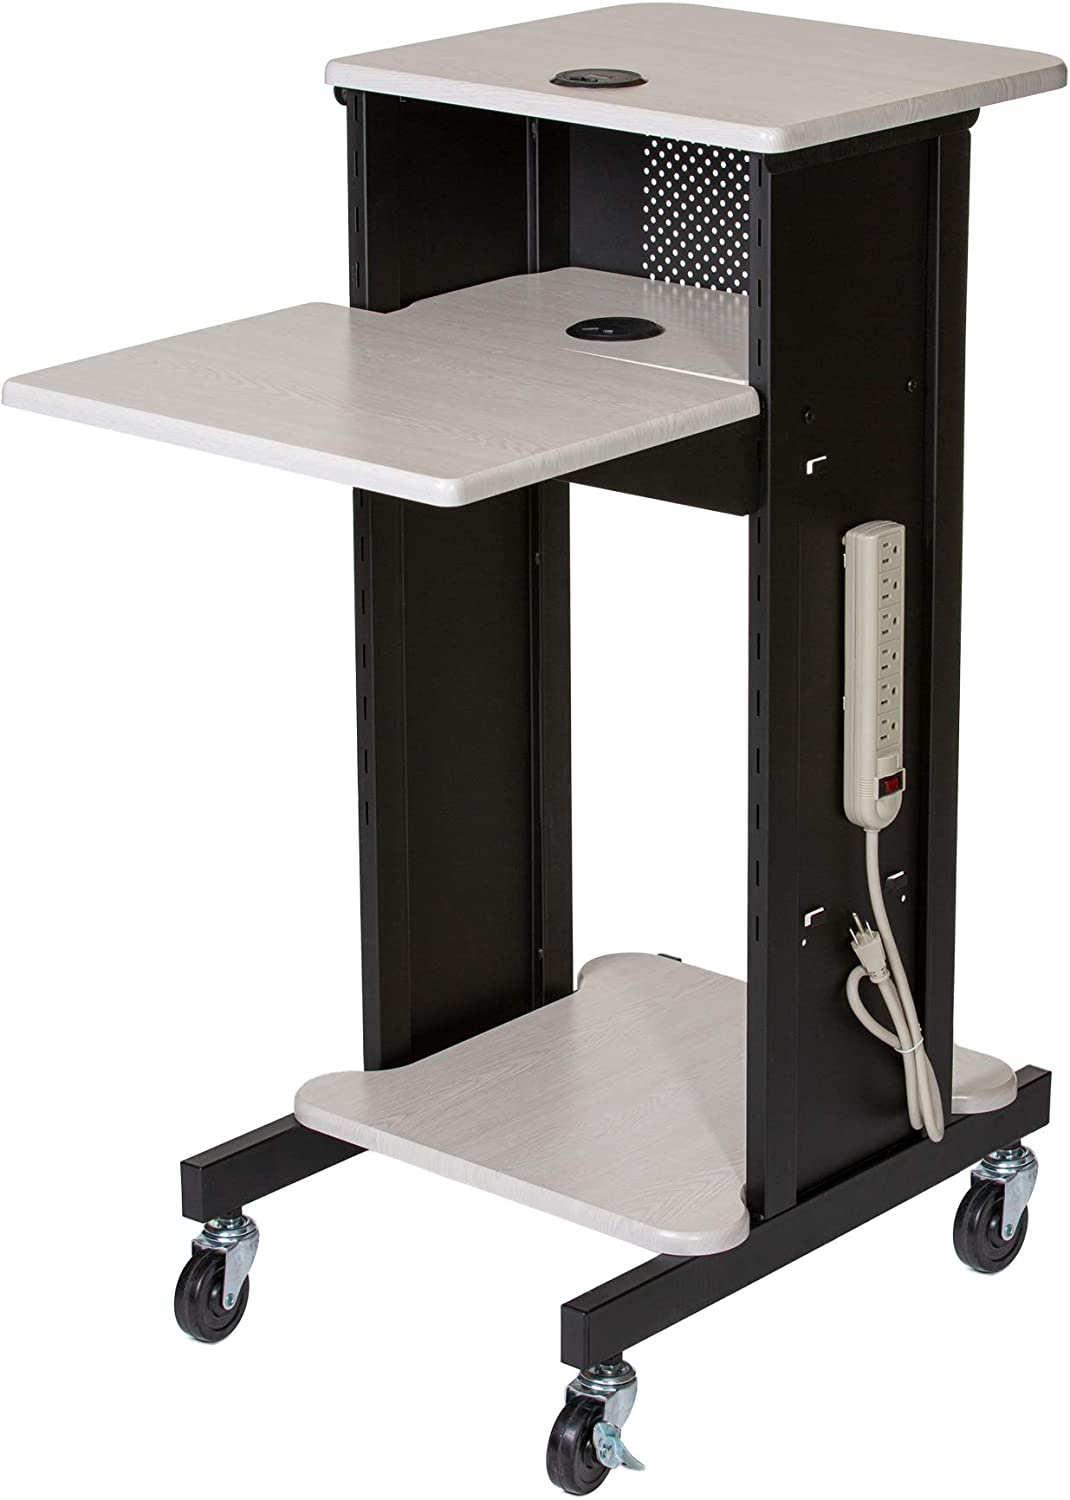 OEF Furnishings Presentation Cart and Stand, OEFPRC200, Steel Frame, Ivory Woodgrain